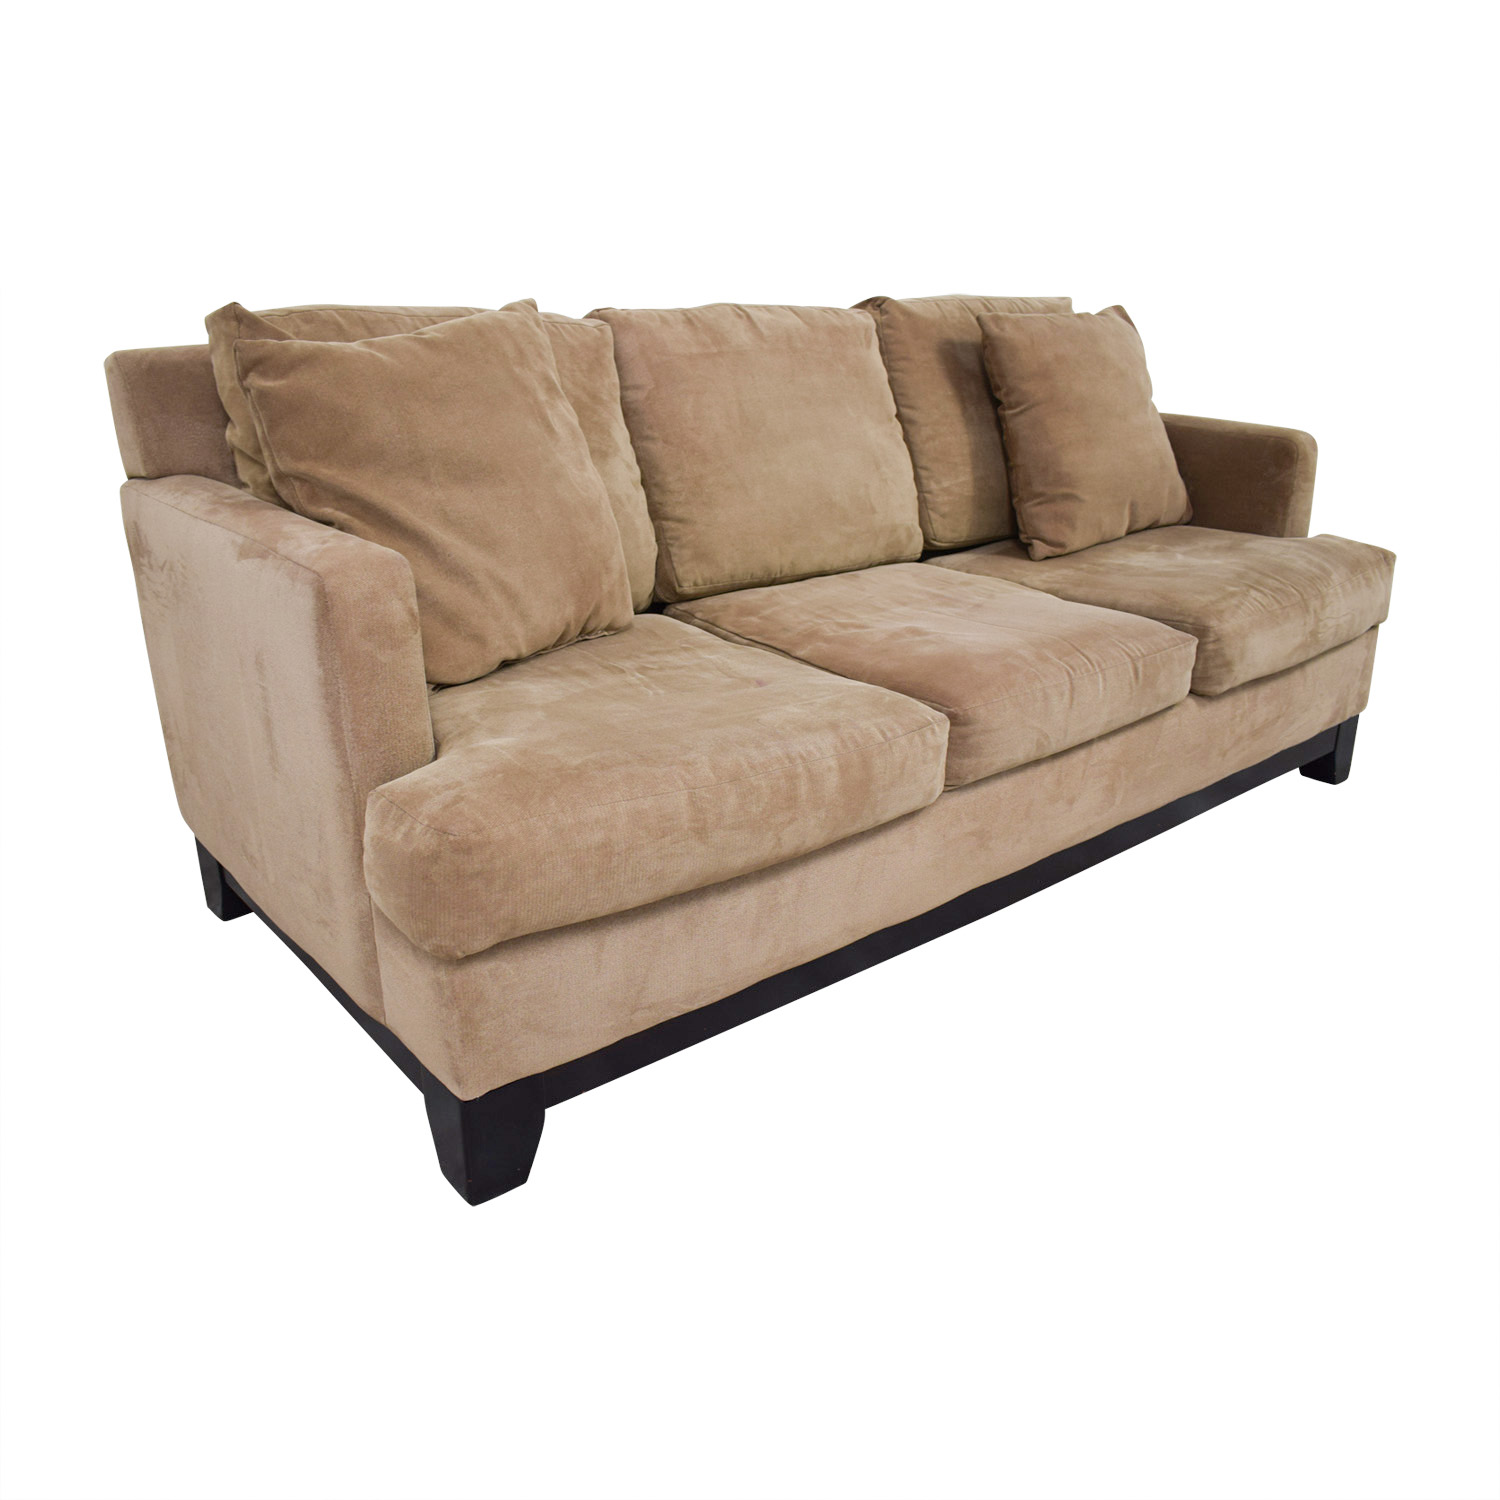 Macys Light Brown Microfiber Three-Cushion Sofa / Sofas